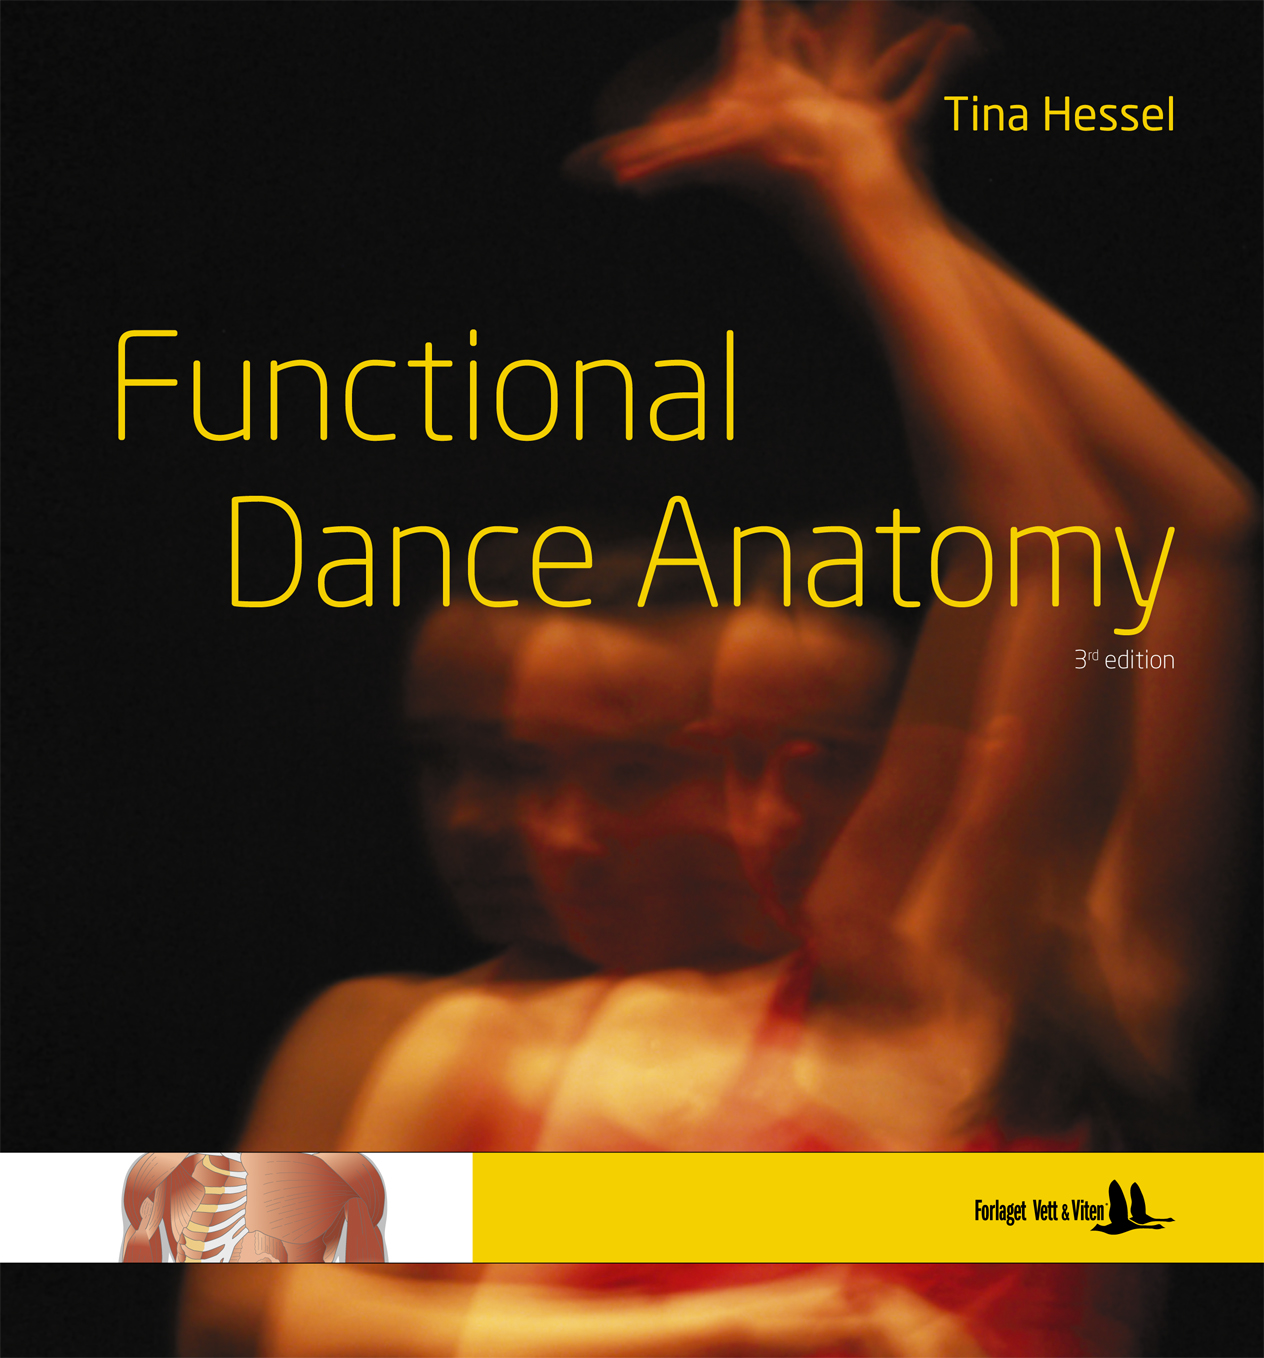 Functional Dance Anatomy